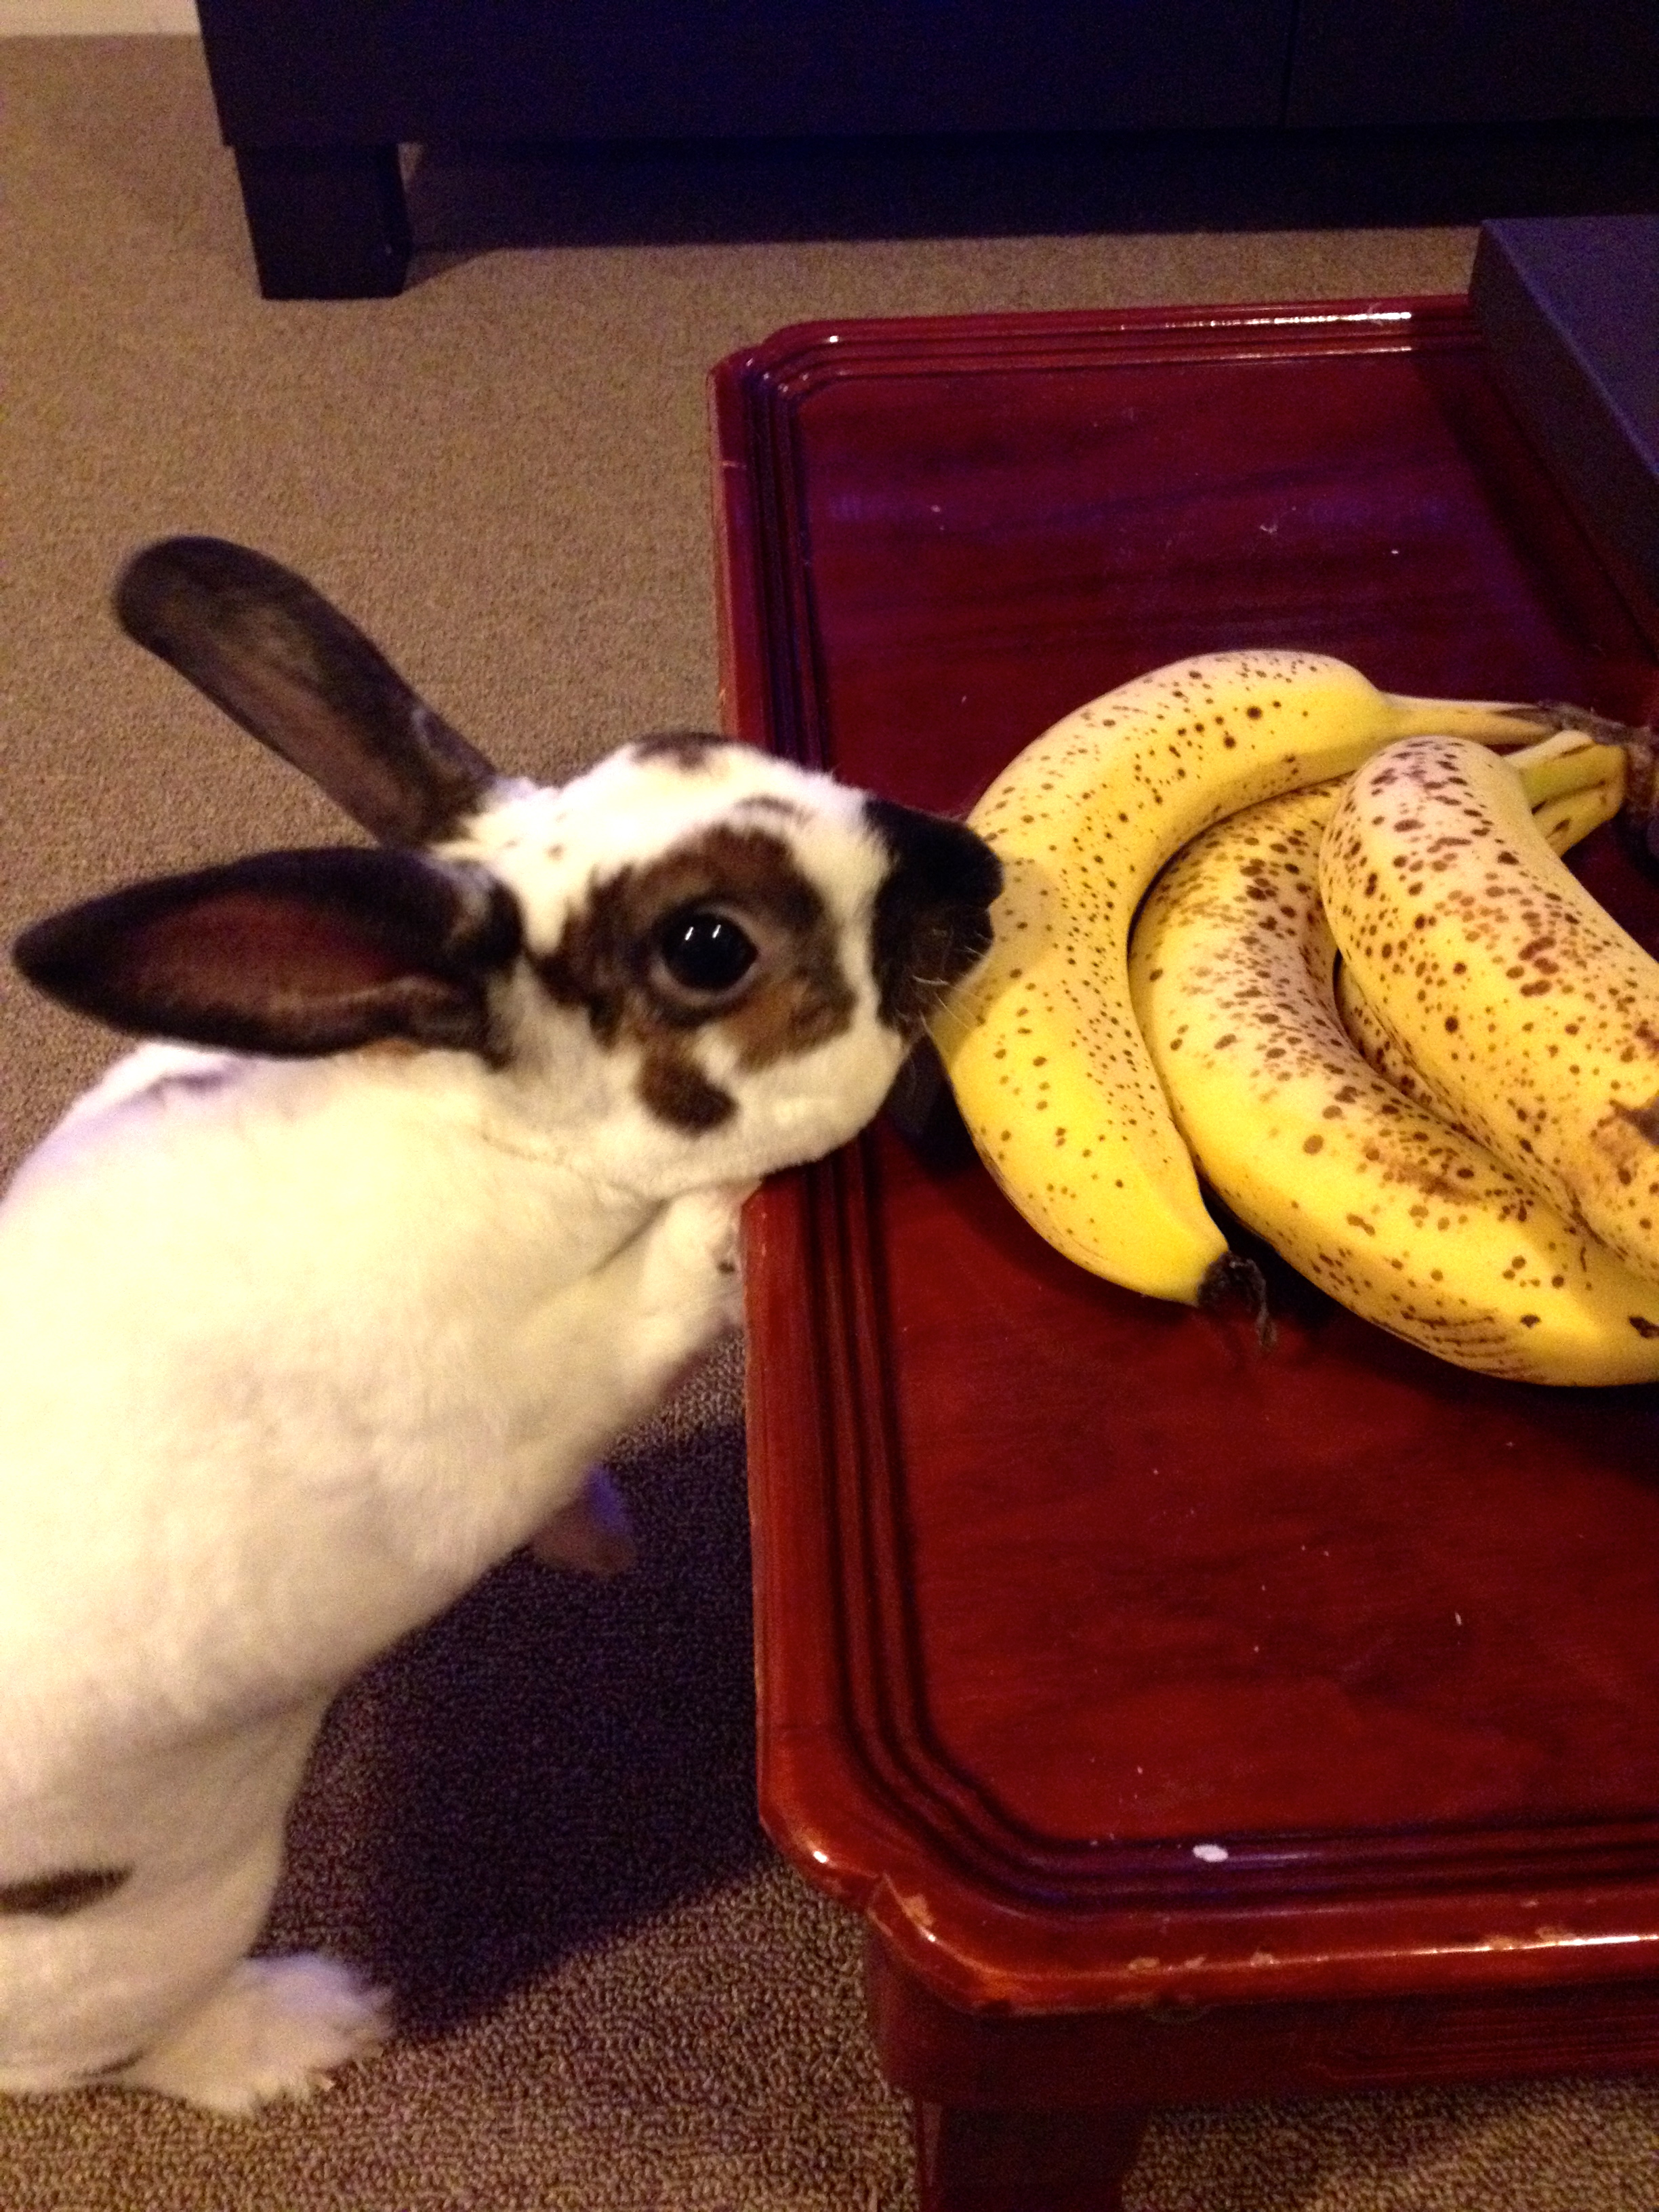 The Infamous Banana Thief Is Caught in the Act!